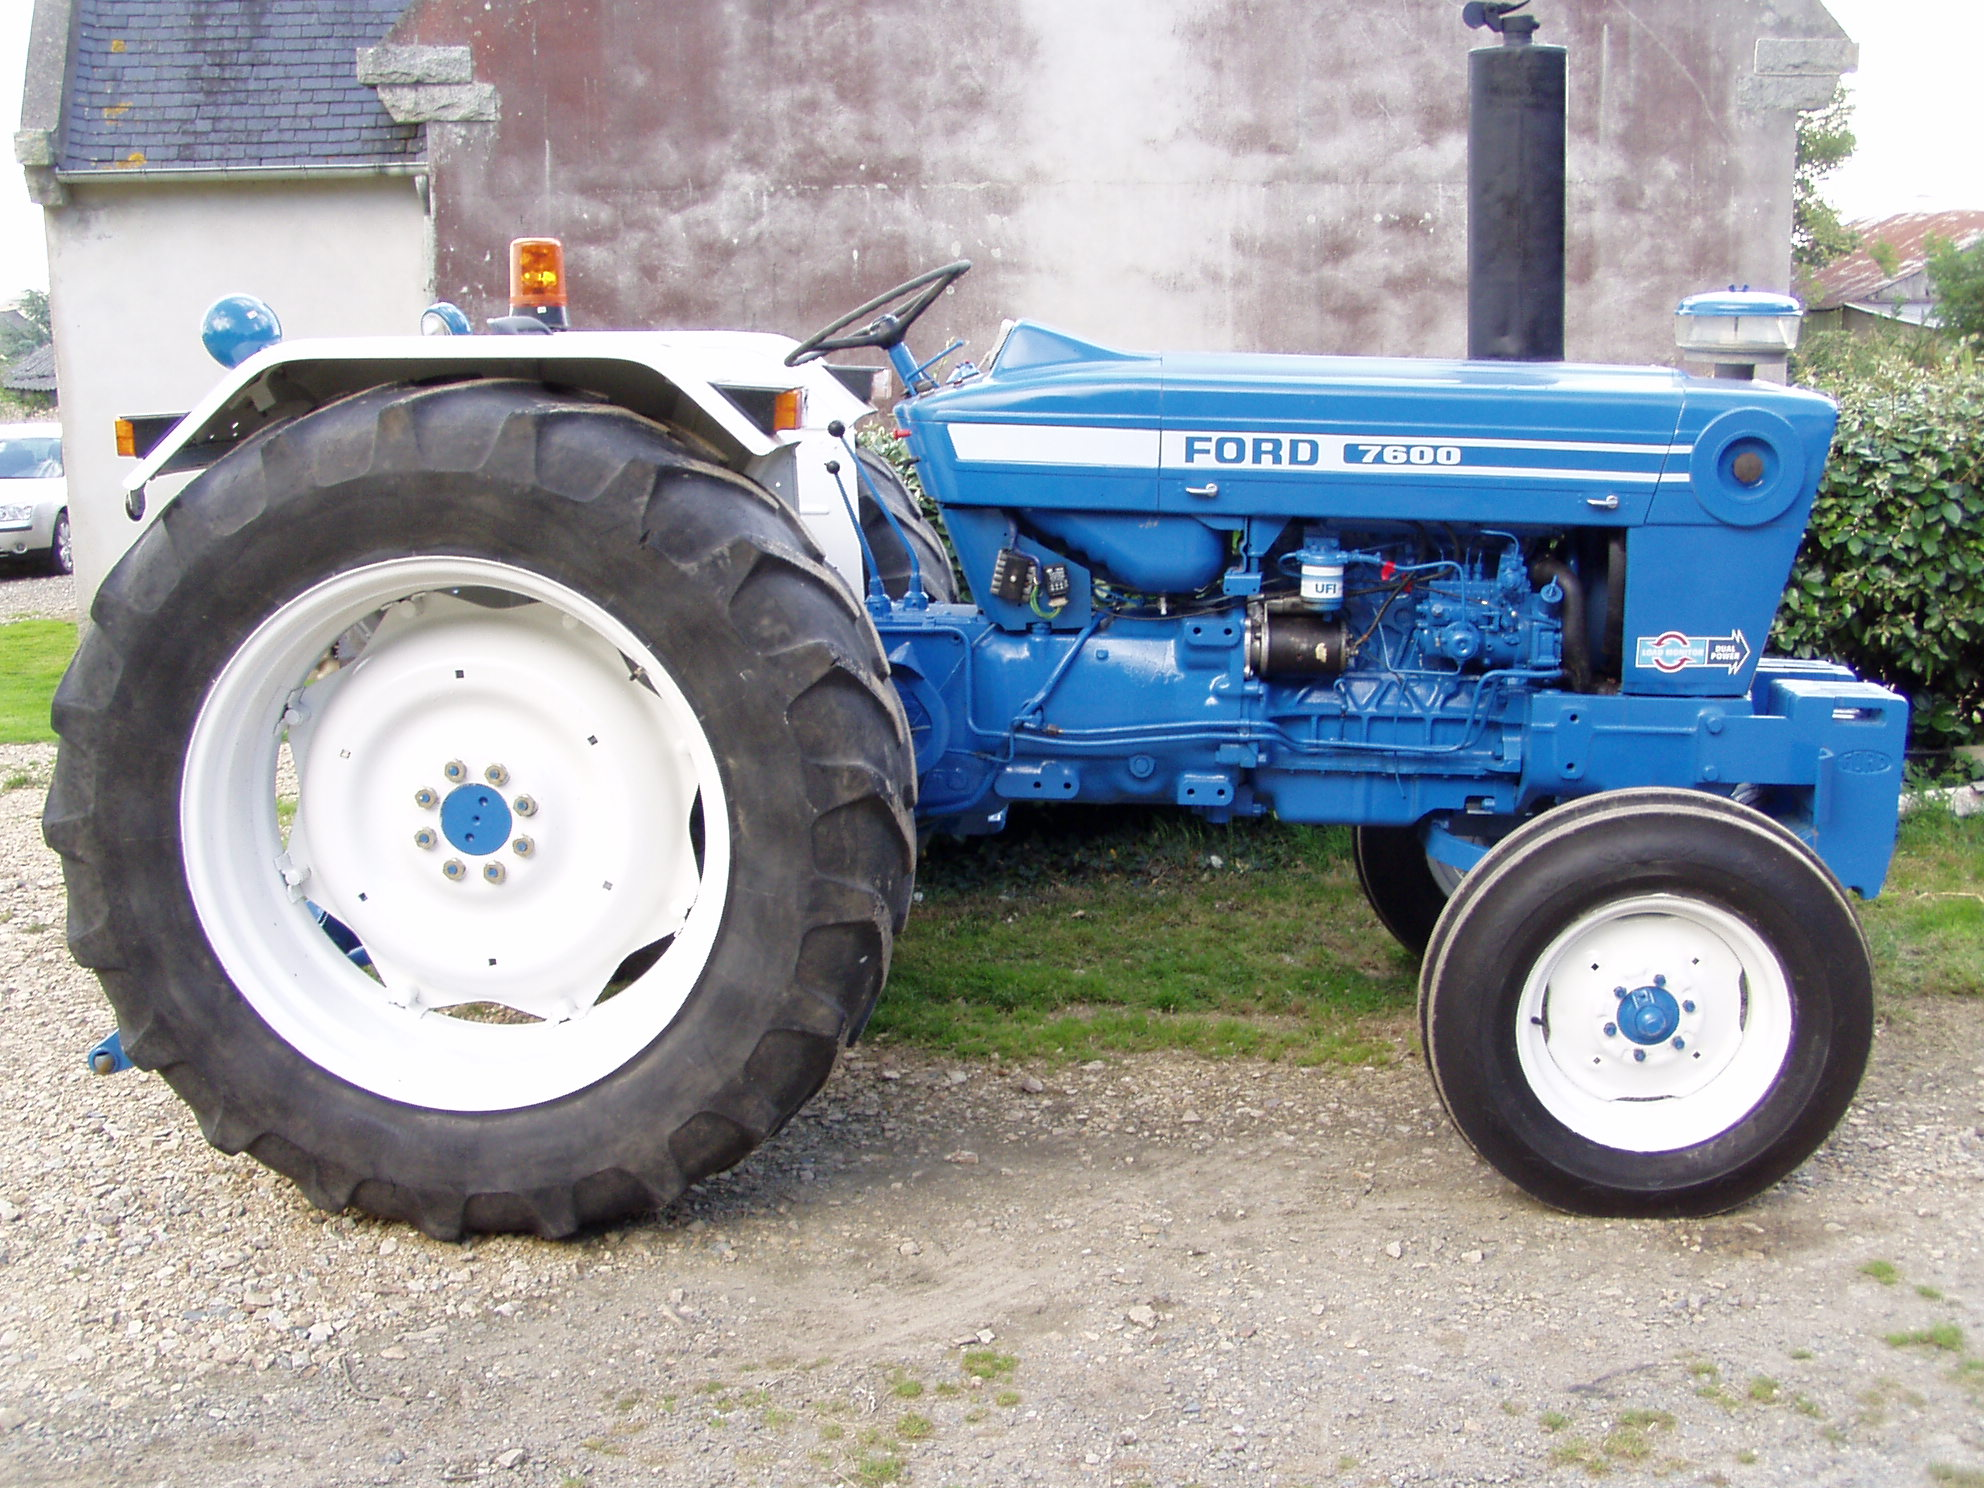 Ford 7600 photo - 2